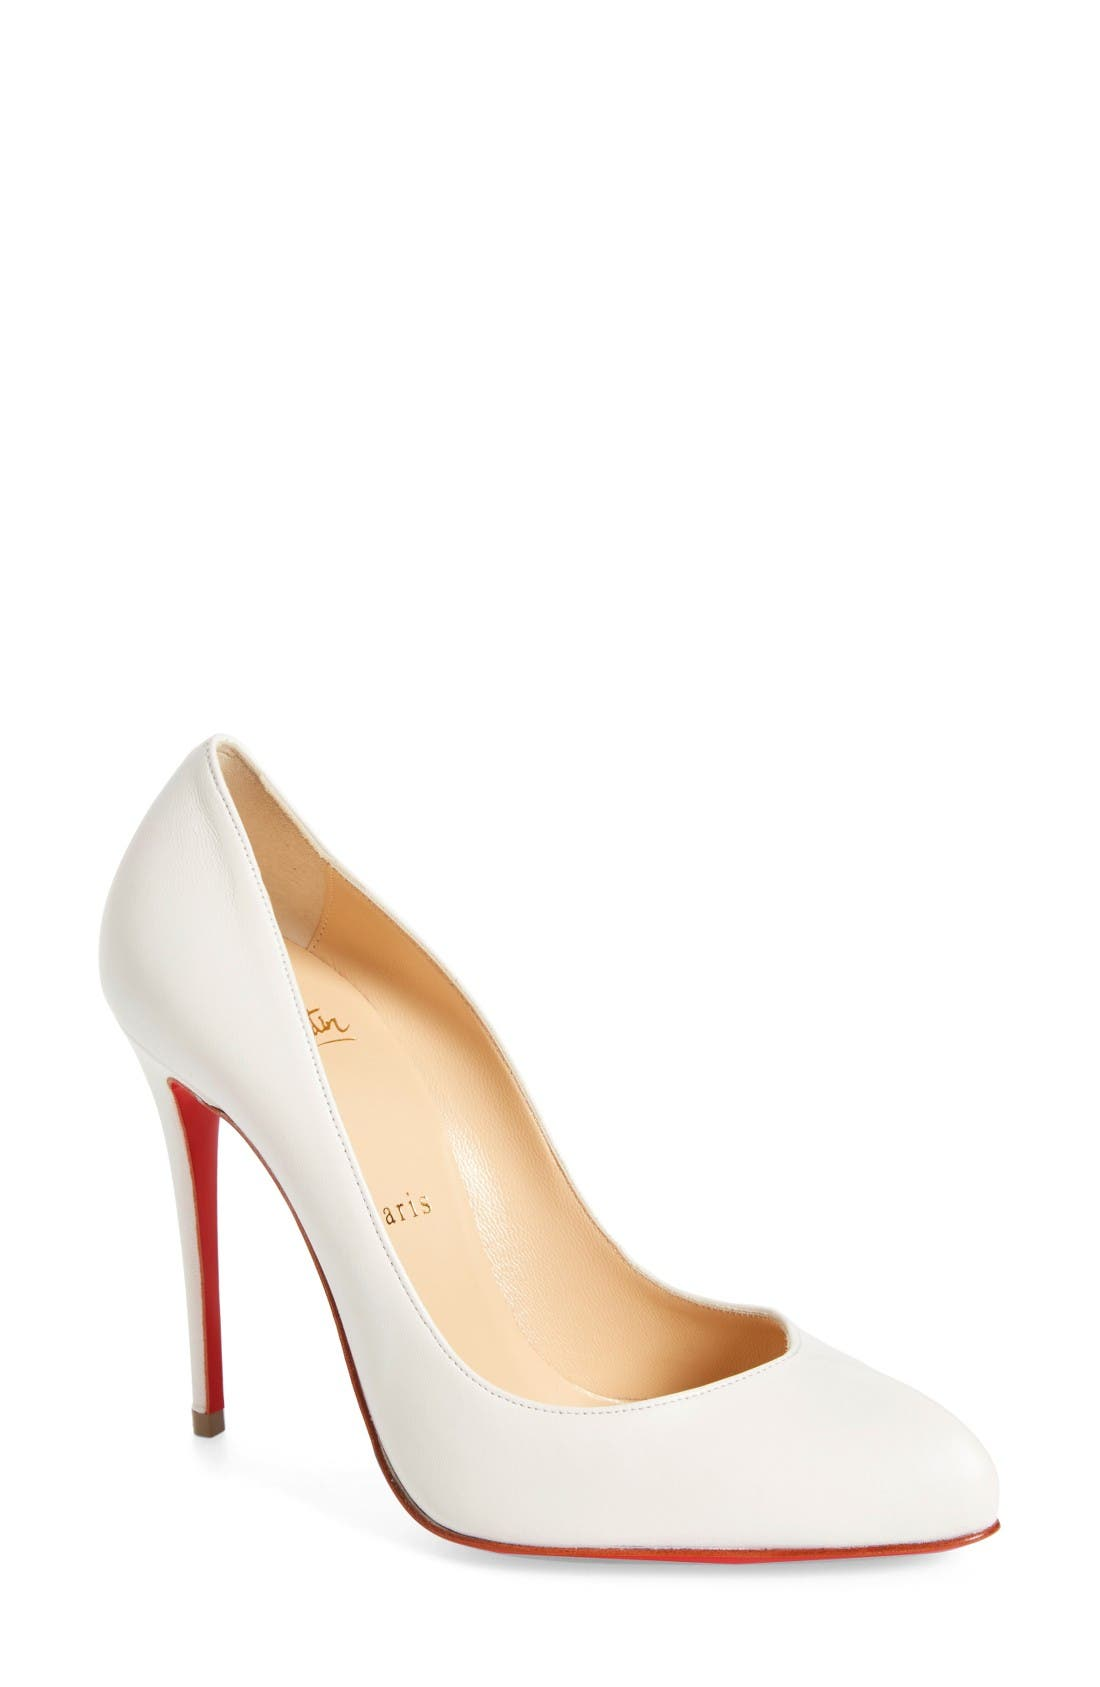 Alternate Image 1 Selected - Christian Louboutin Breche Pump